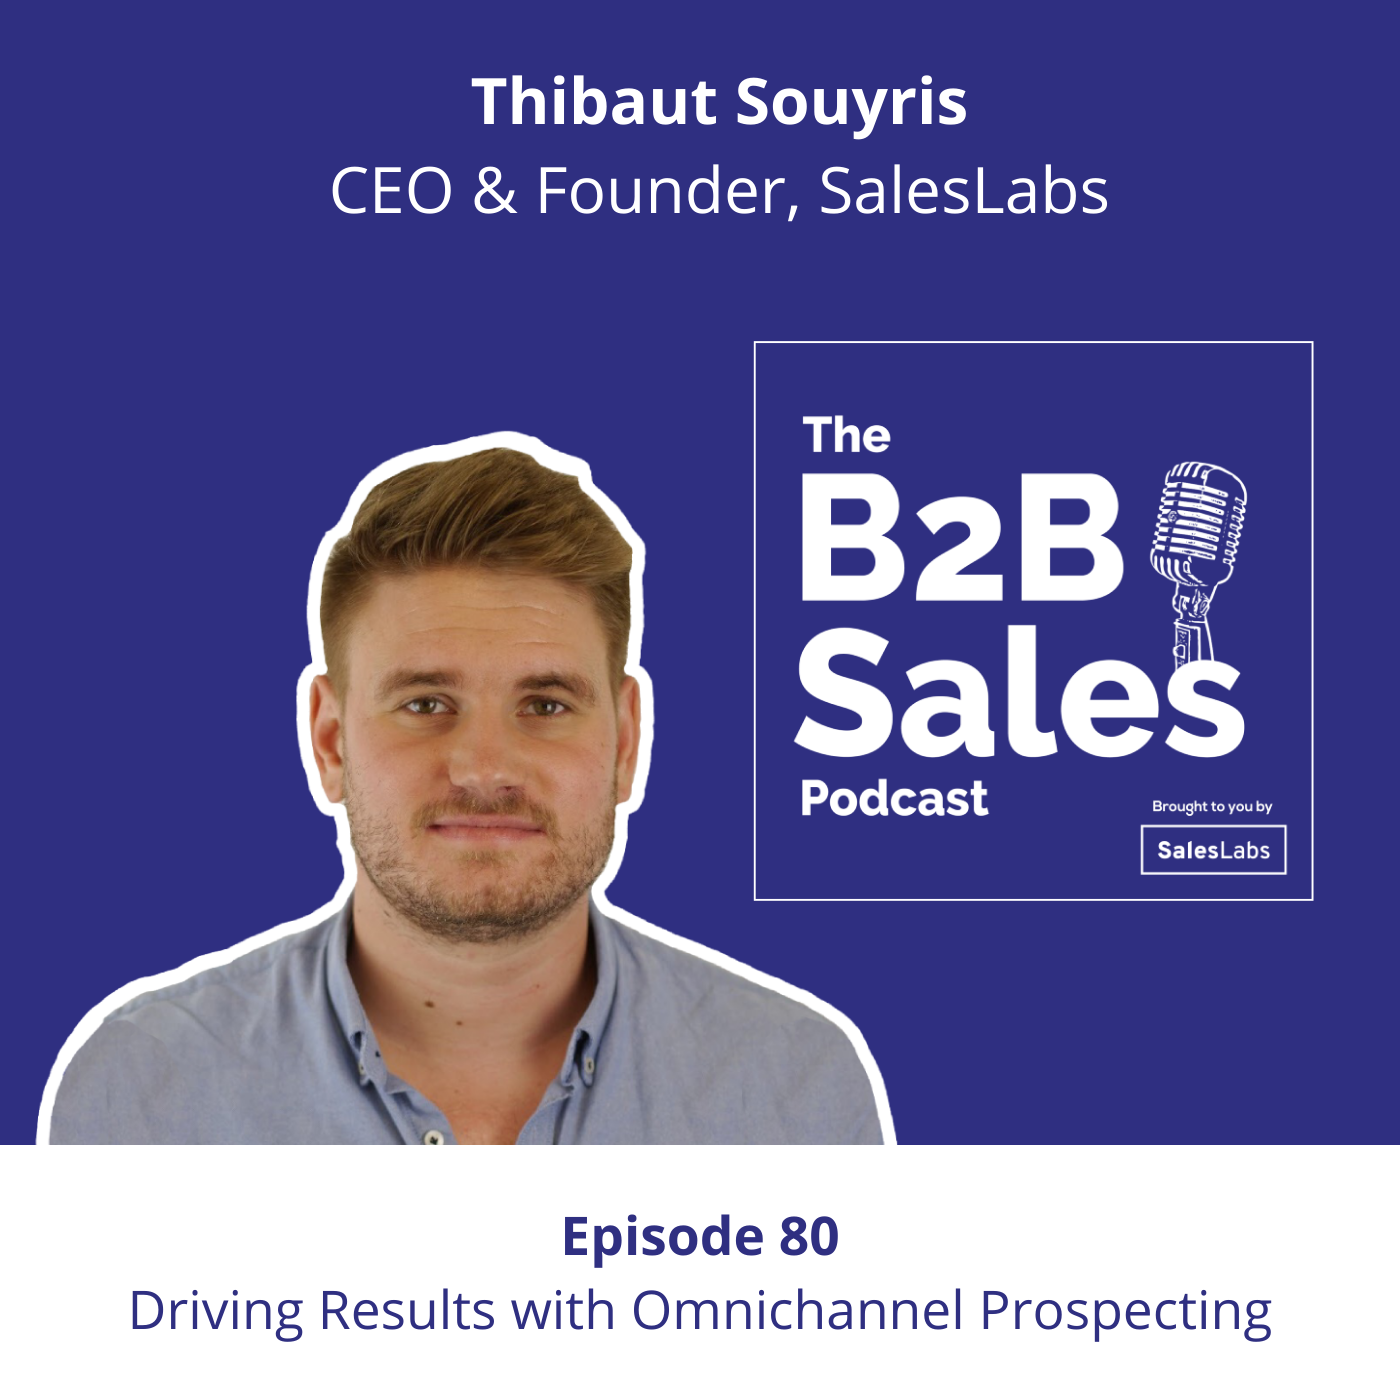 Artwork for podcast The B2B Sales Podcast